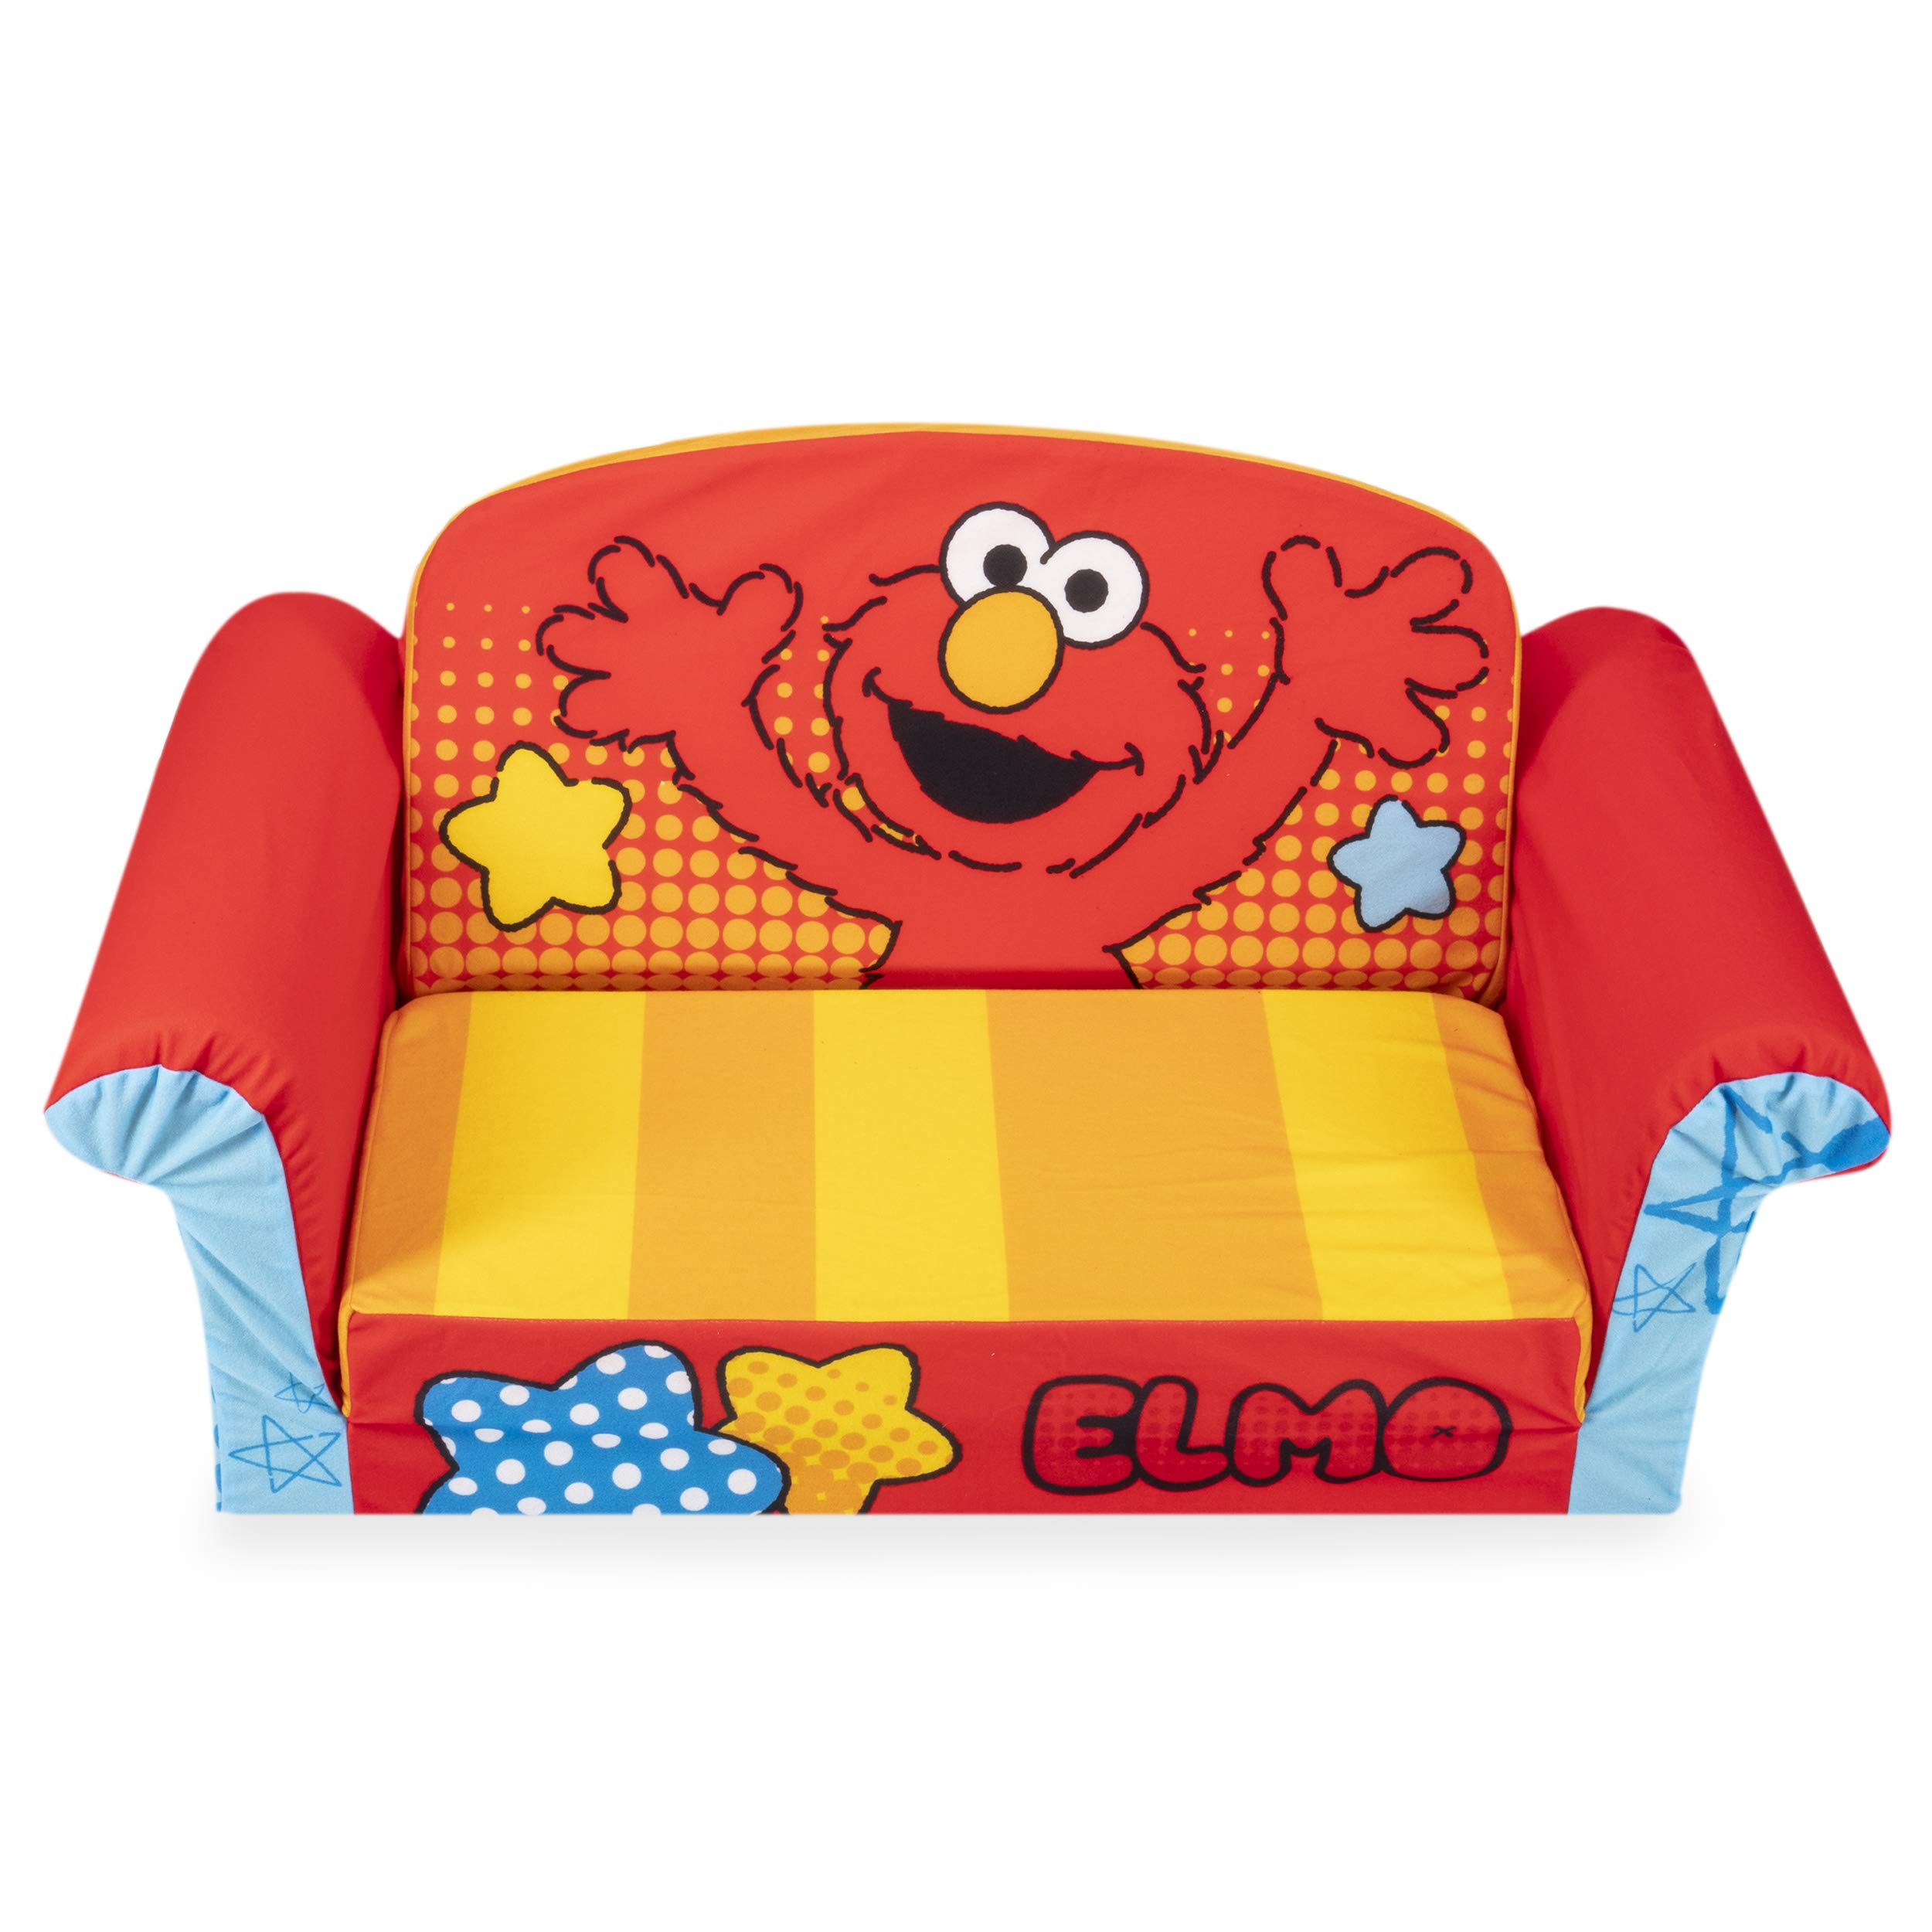 Marshmallow Furniture, Children's 2-in-1 Flip Open Foam Sofa, Sesame Street'S Elmo, by Spin Master by Marshmallow Furniture